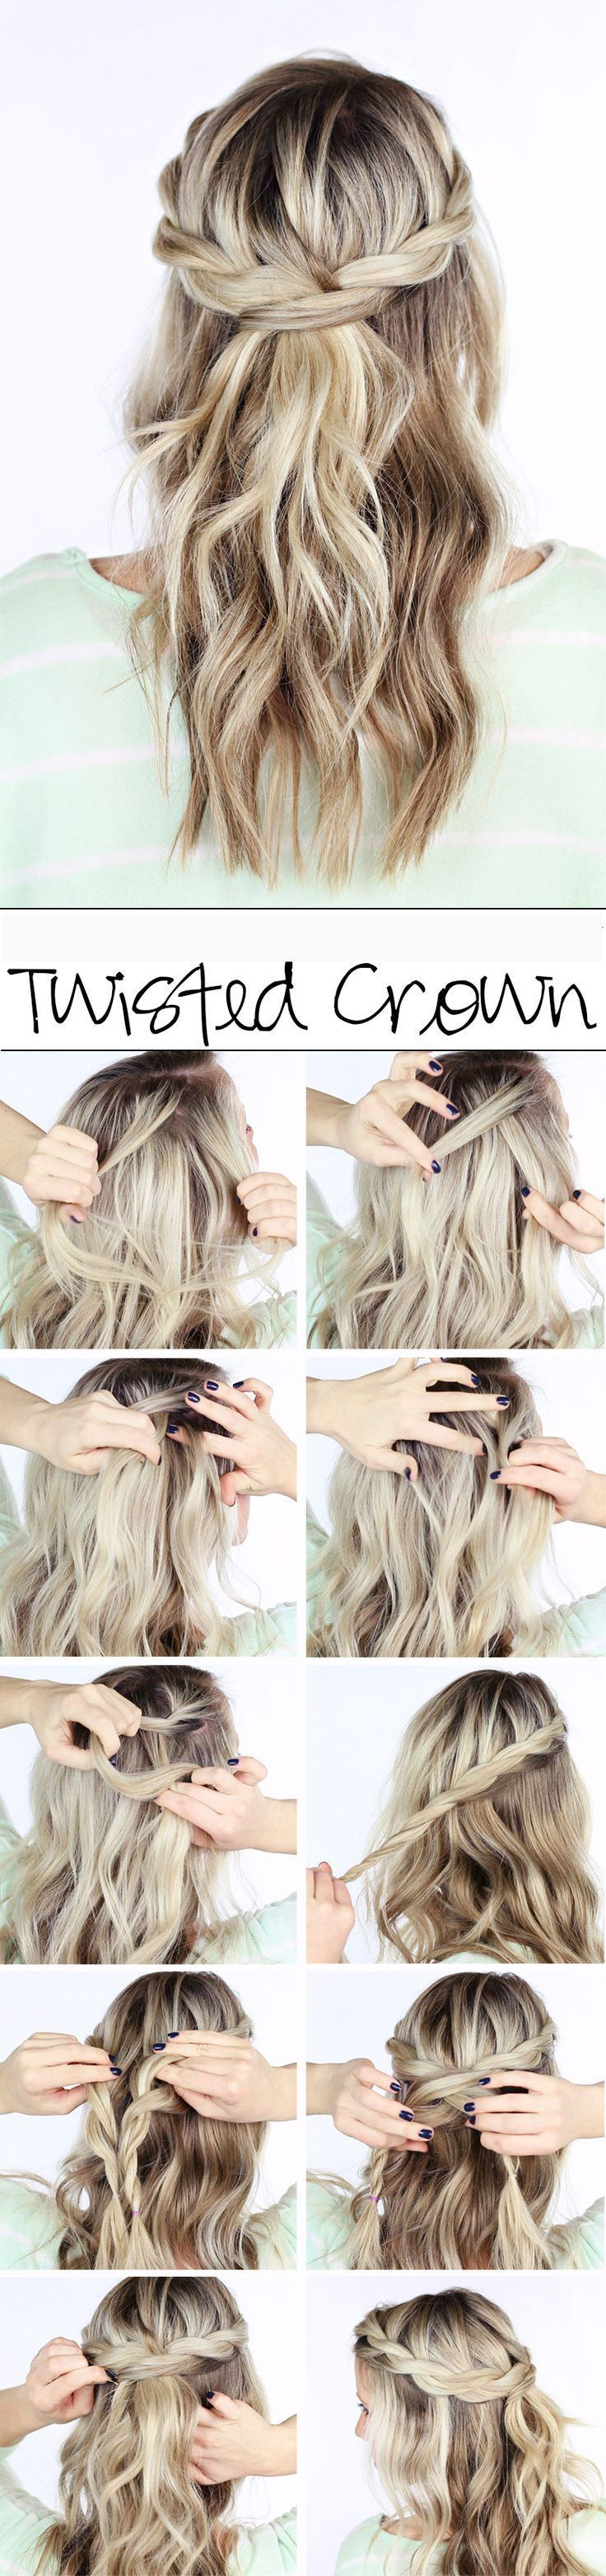 Best DIY Wedding Hairstyles with Tutorials - Looking for Hair Extensions to refresh your hair look instantly? http://www.hairextensionsale.com/?source=autopin-hes